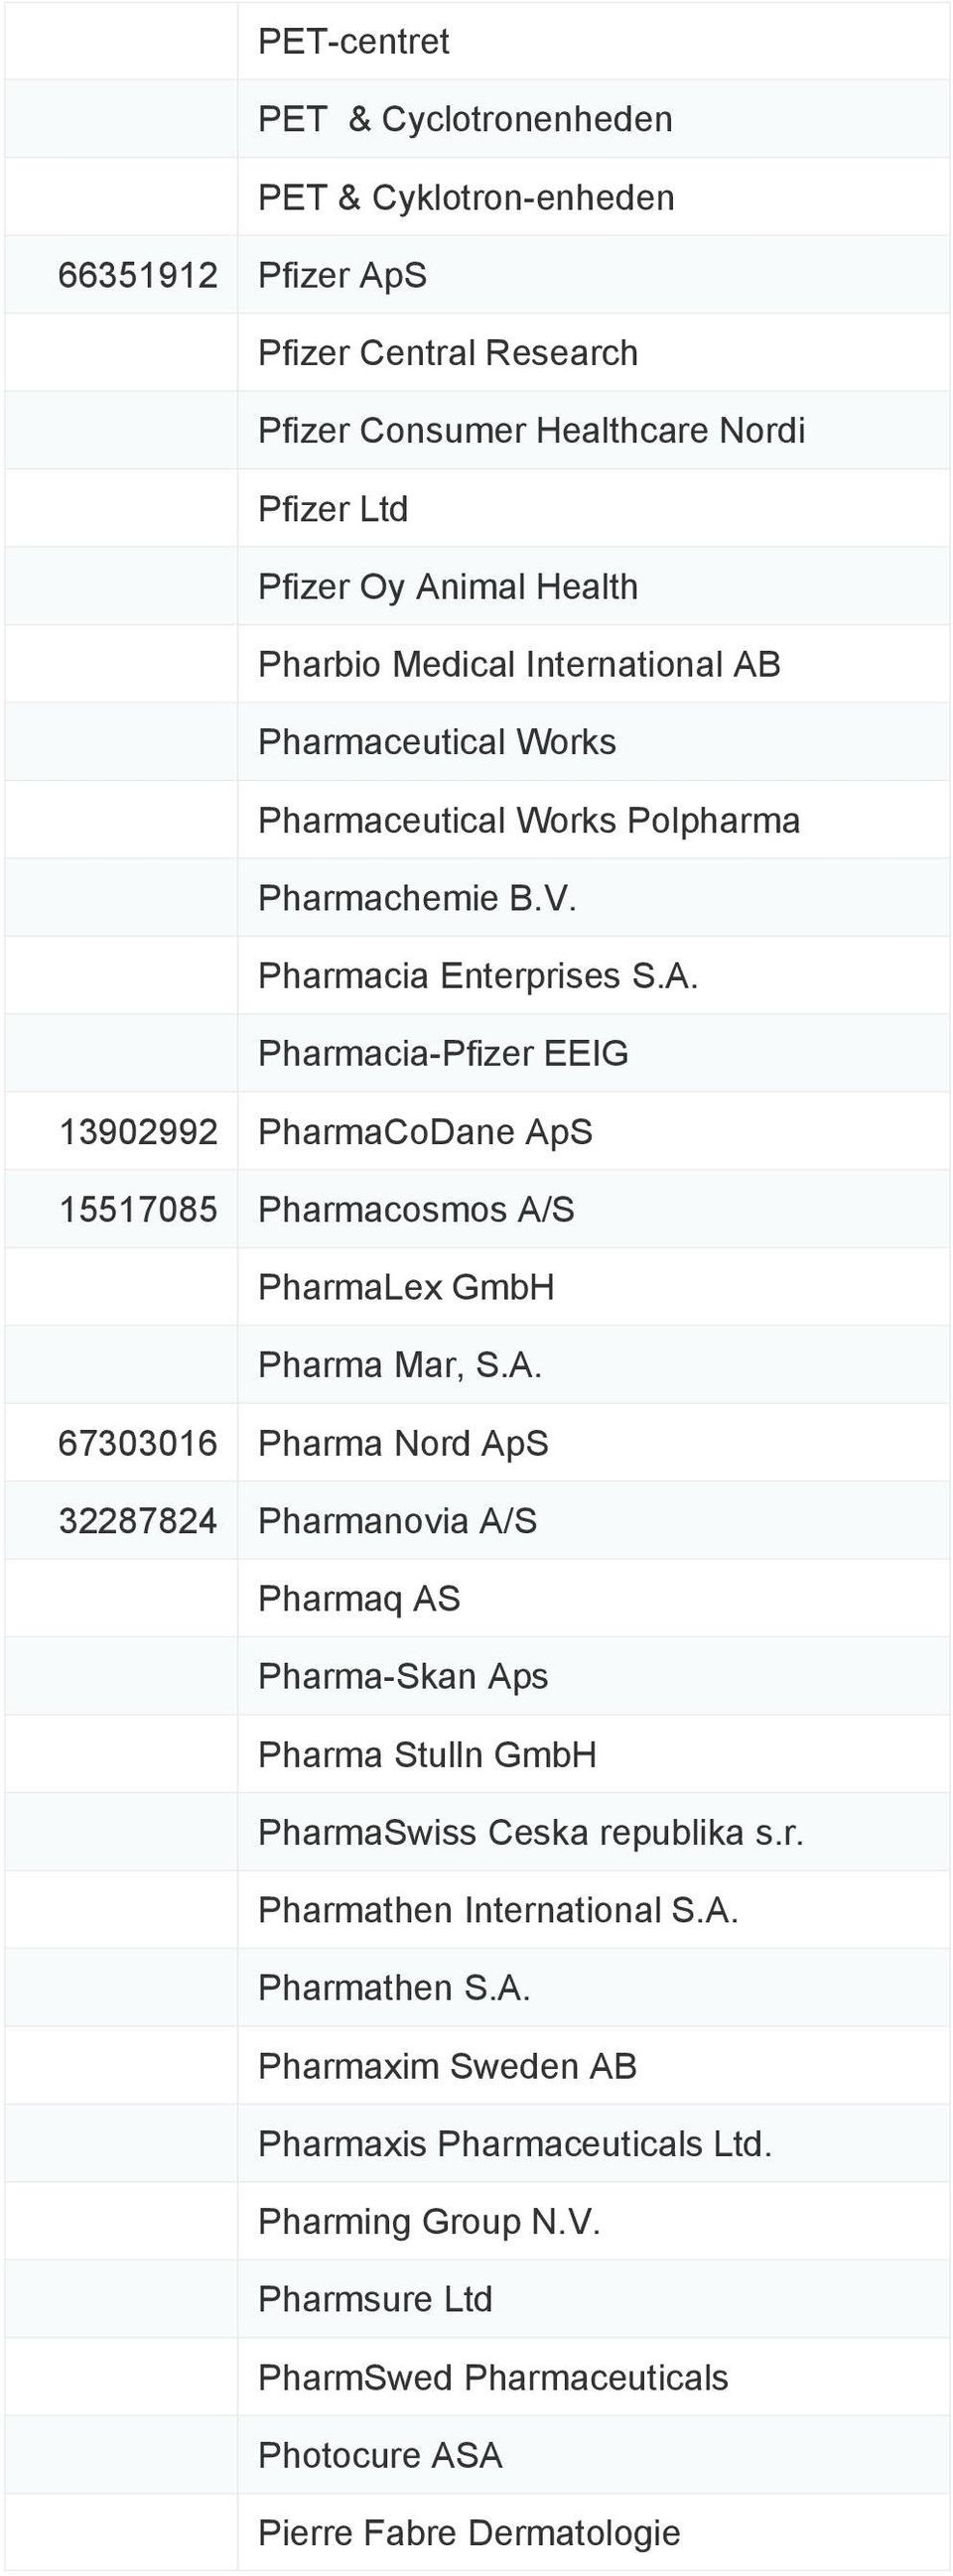 A. 67303016 Pharma Nord ApS 32287824 Pharmanovia A/S Pharmaq AS Pharma-Skan Aps Pharma Stulln GmbH PharmaSwiss Ceska republika s.r. Pharmathen International S.A. Pharmathen S.A. Pharmaxim Sweden AB Pharmaxis Pharmaceuticals Ltd.